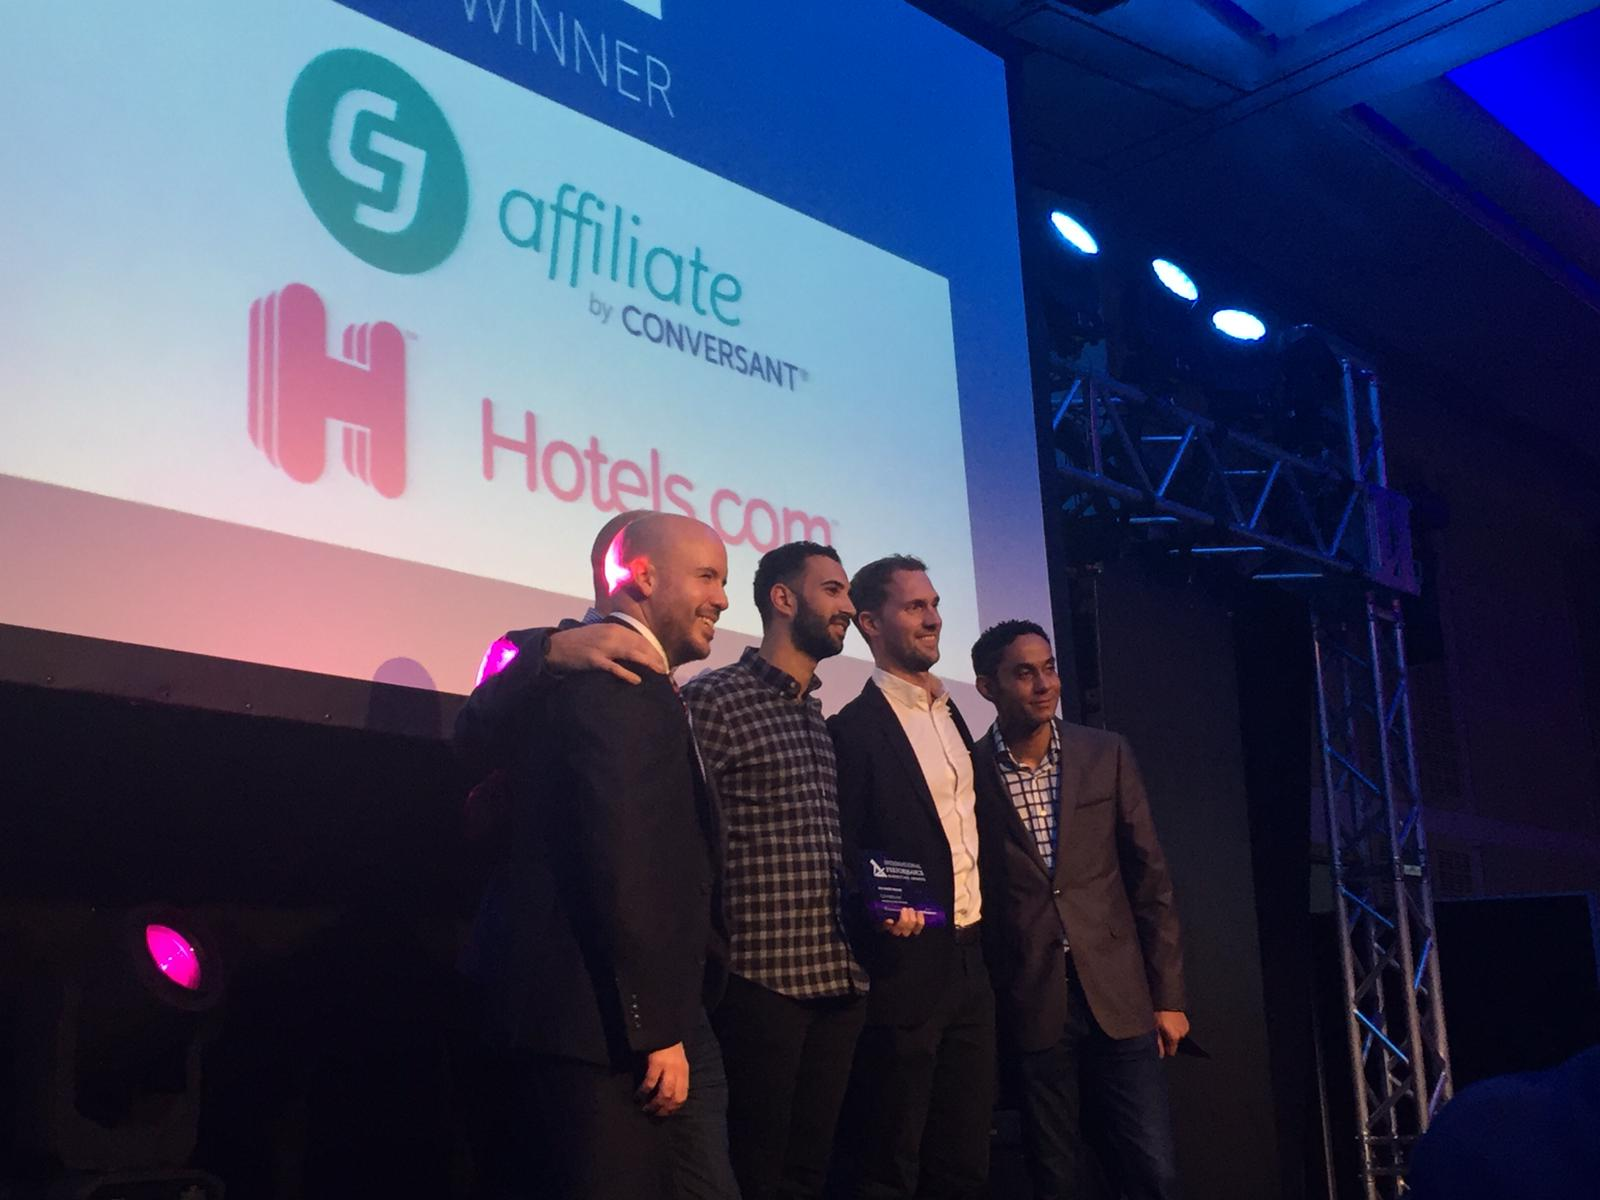 CJ Affiliate and Hotels.com win the IPMA for Best Performance Marketing Campaign or Strategy (USA)